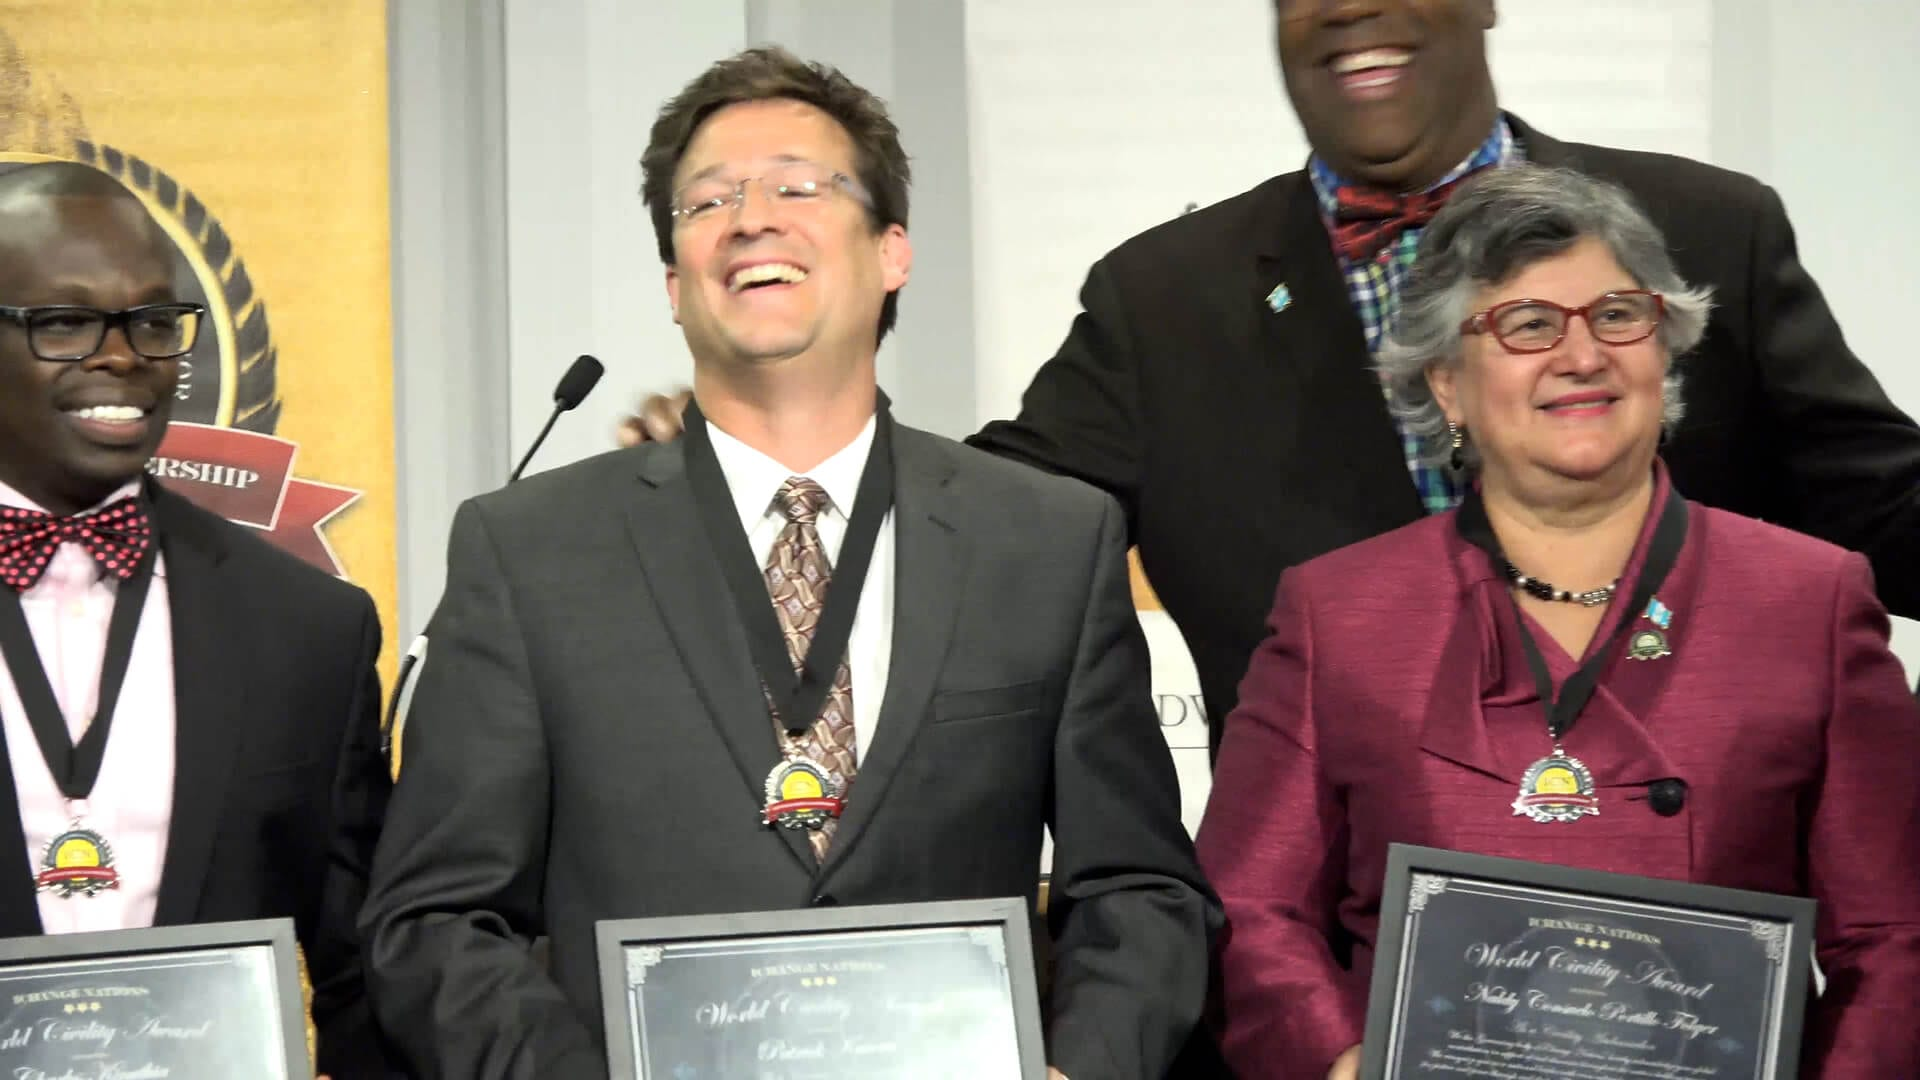 Patrick Kucera receiving the World Civility Award at iChange Nations by Dr. Clyde Rivers